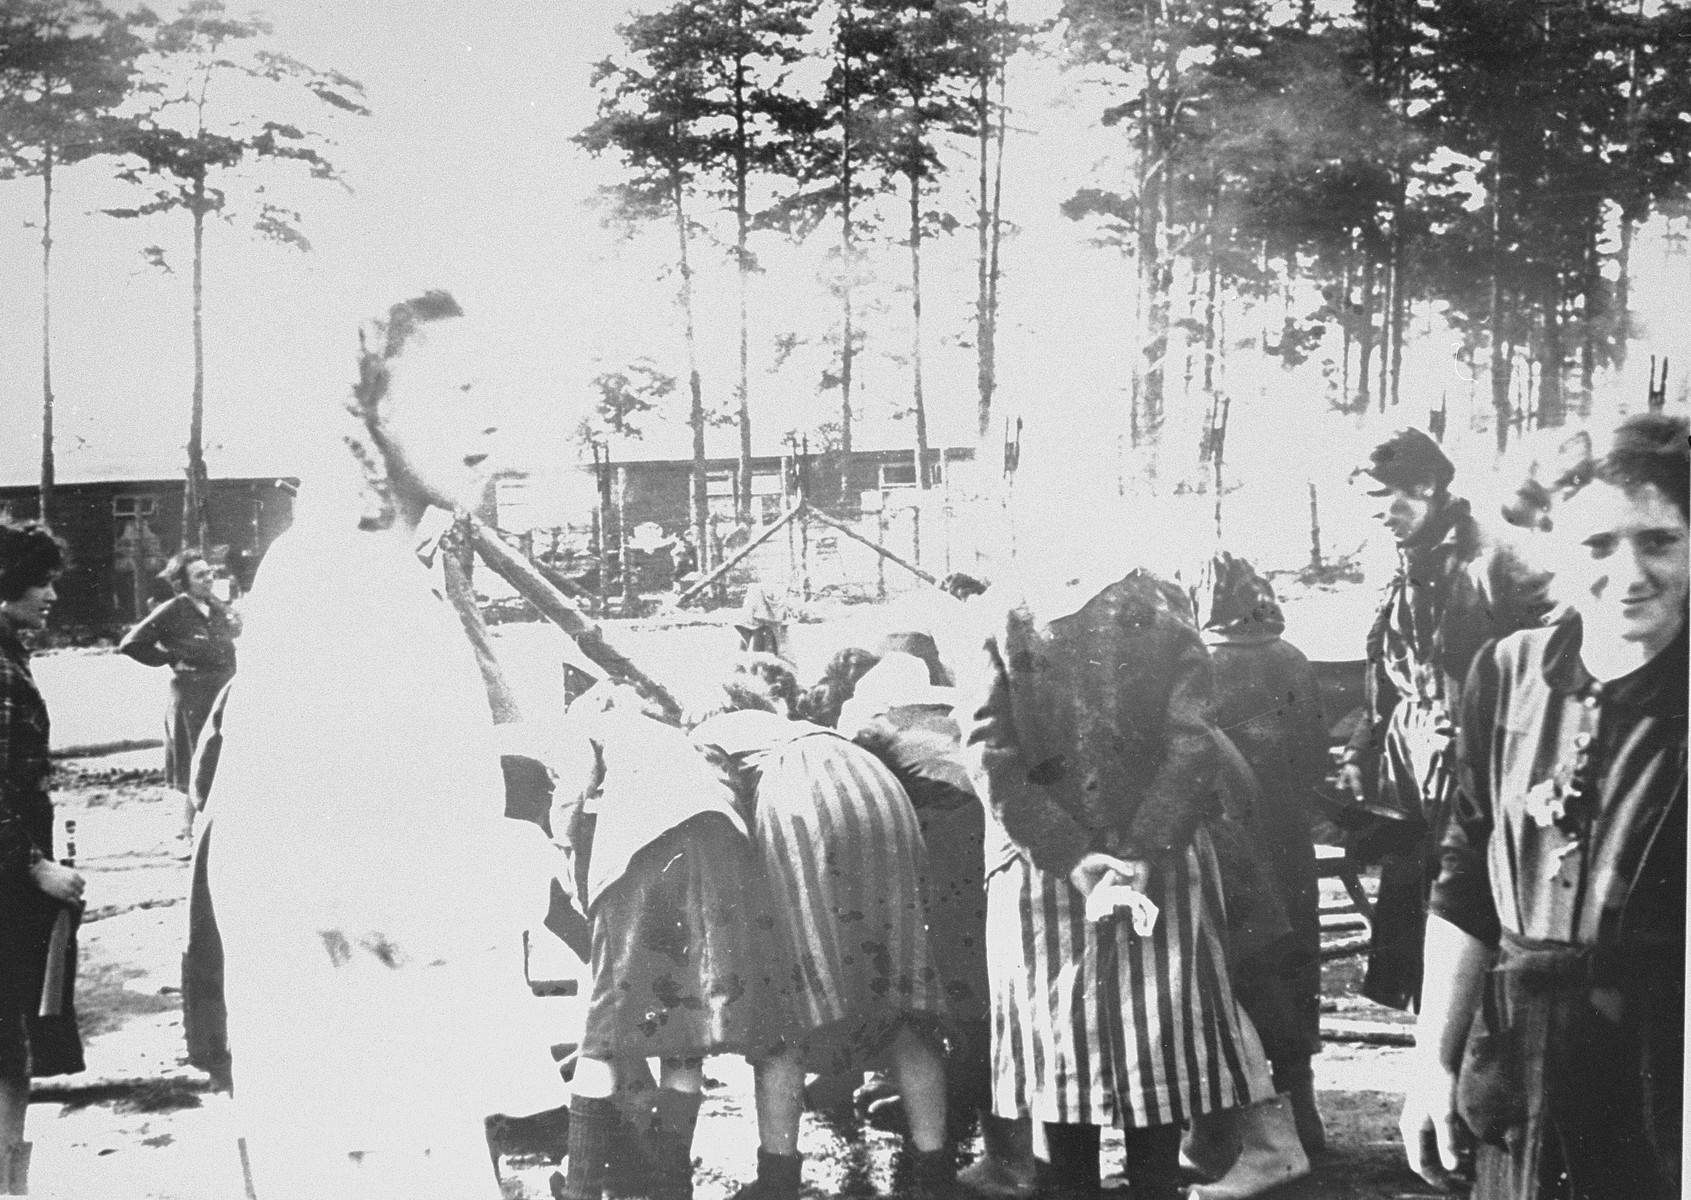 Female survivors in Bergen-Belsen use fresh water pumped into the camp by the British Army.